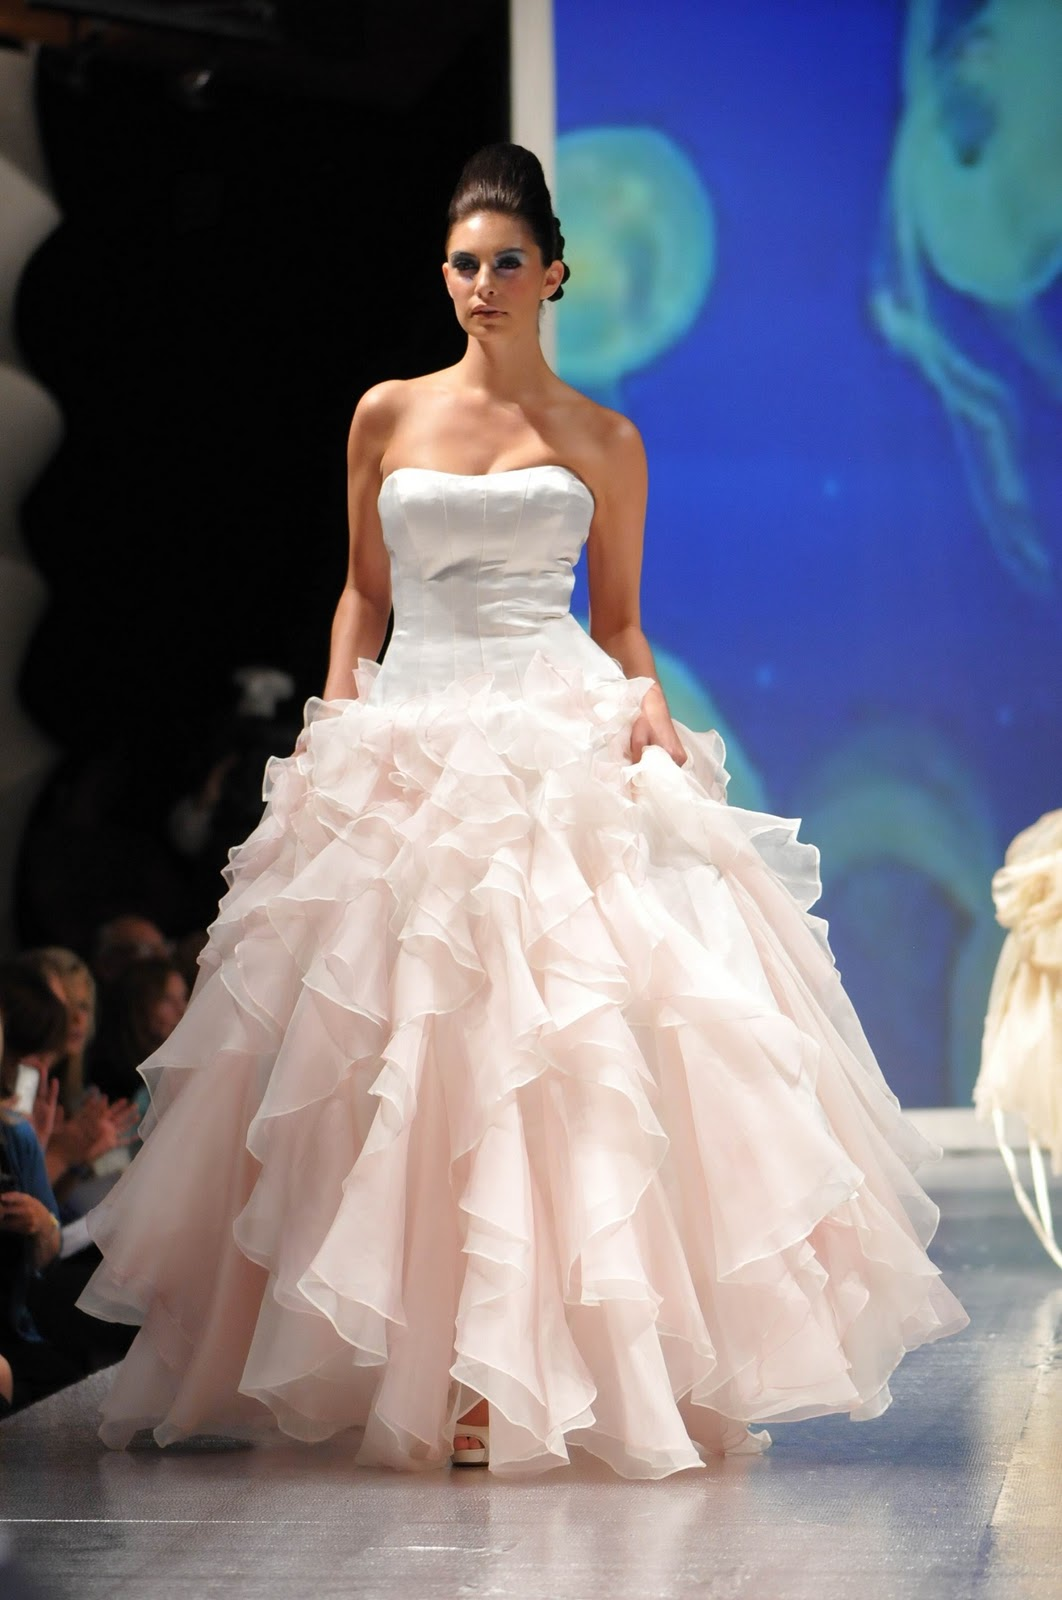 Luly-yang-2011-wedding-dress-inspireation-ocean-white-strapless-4.original